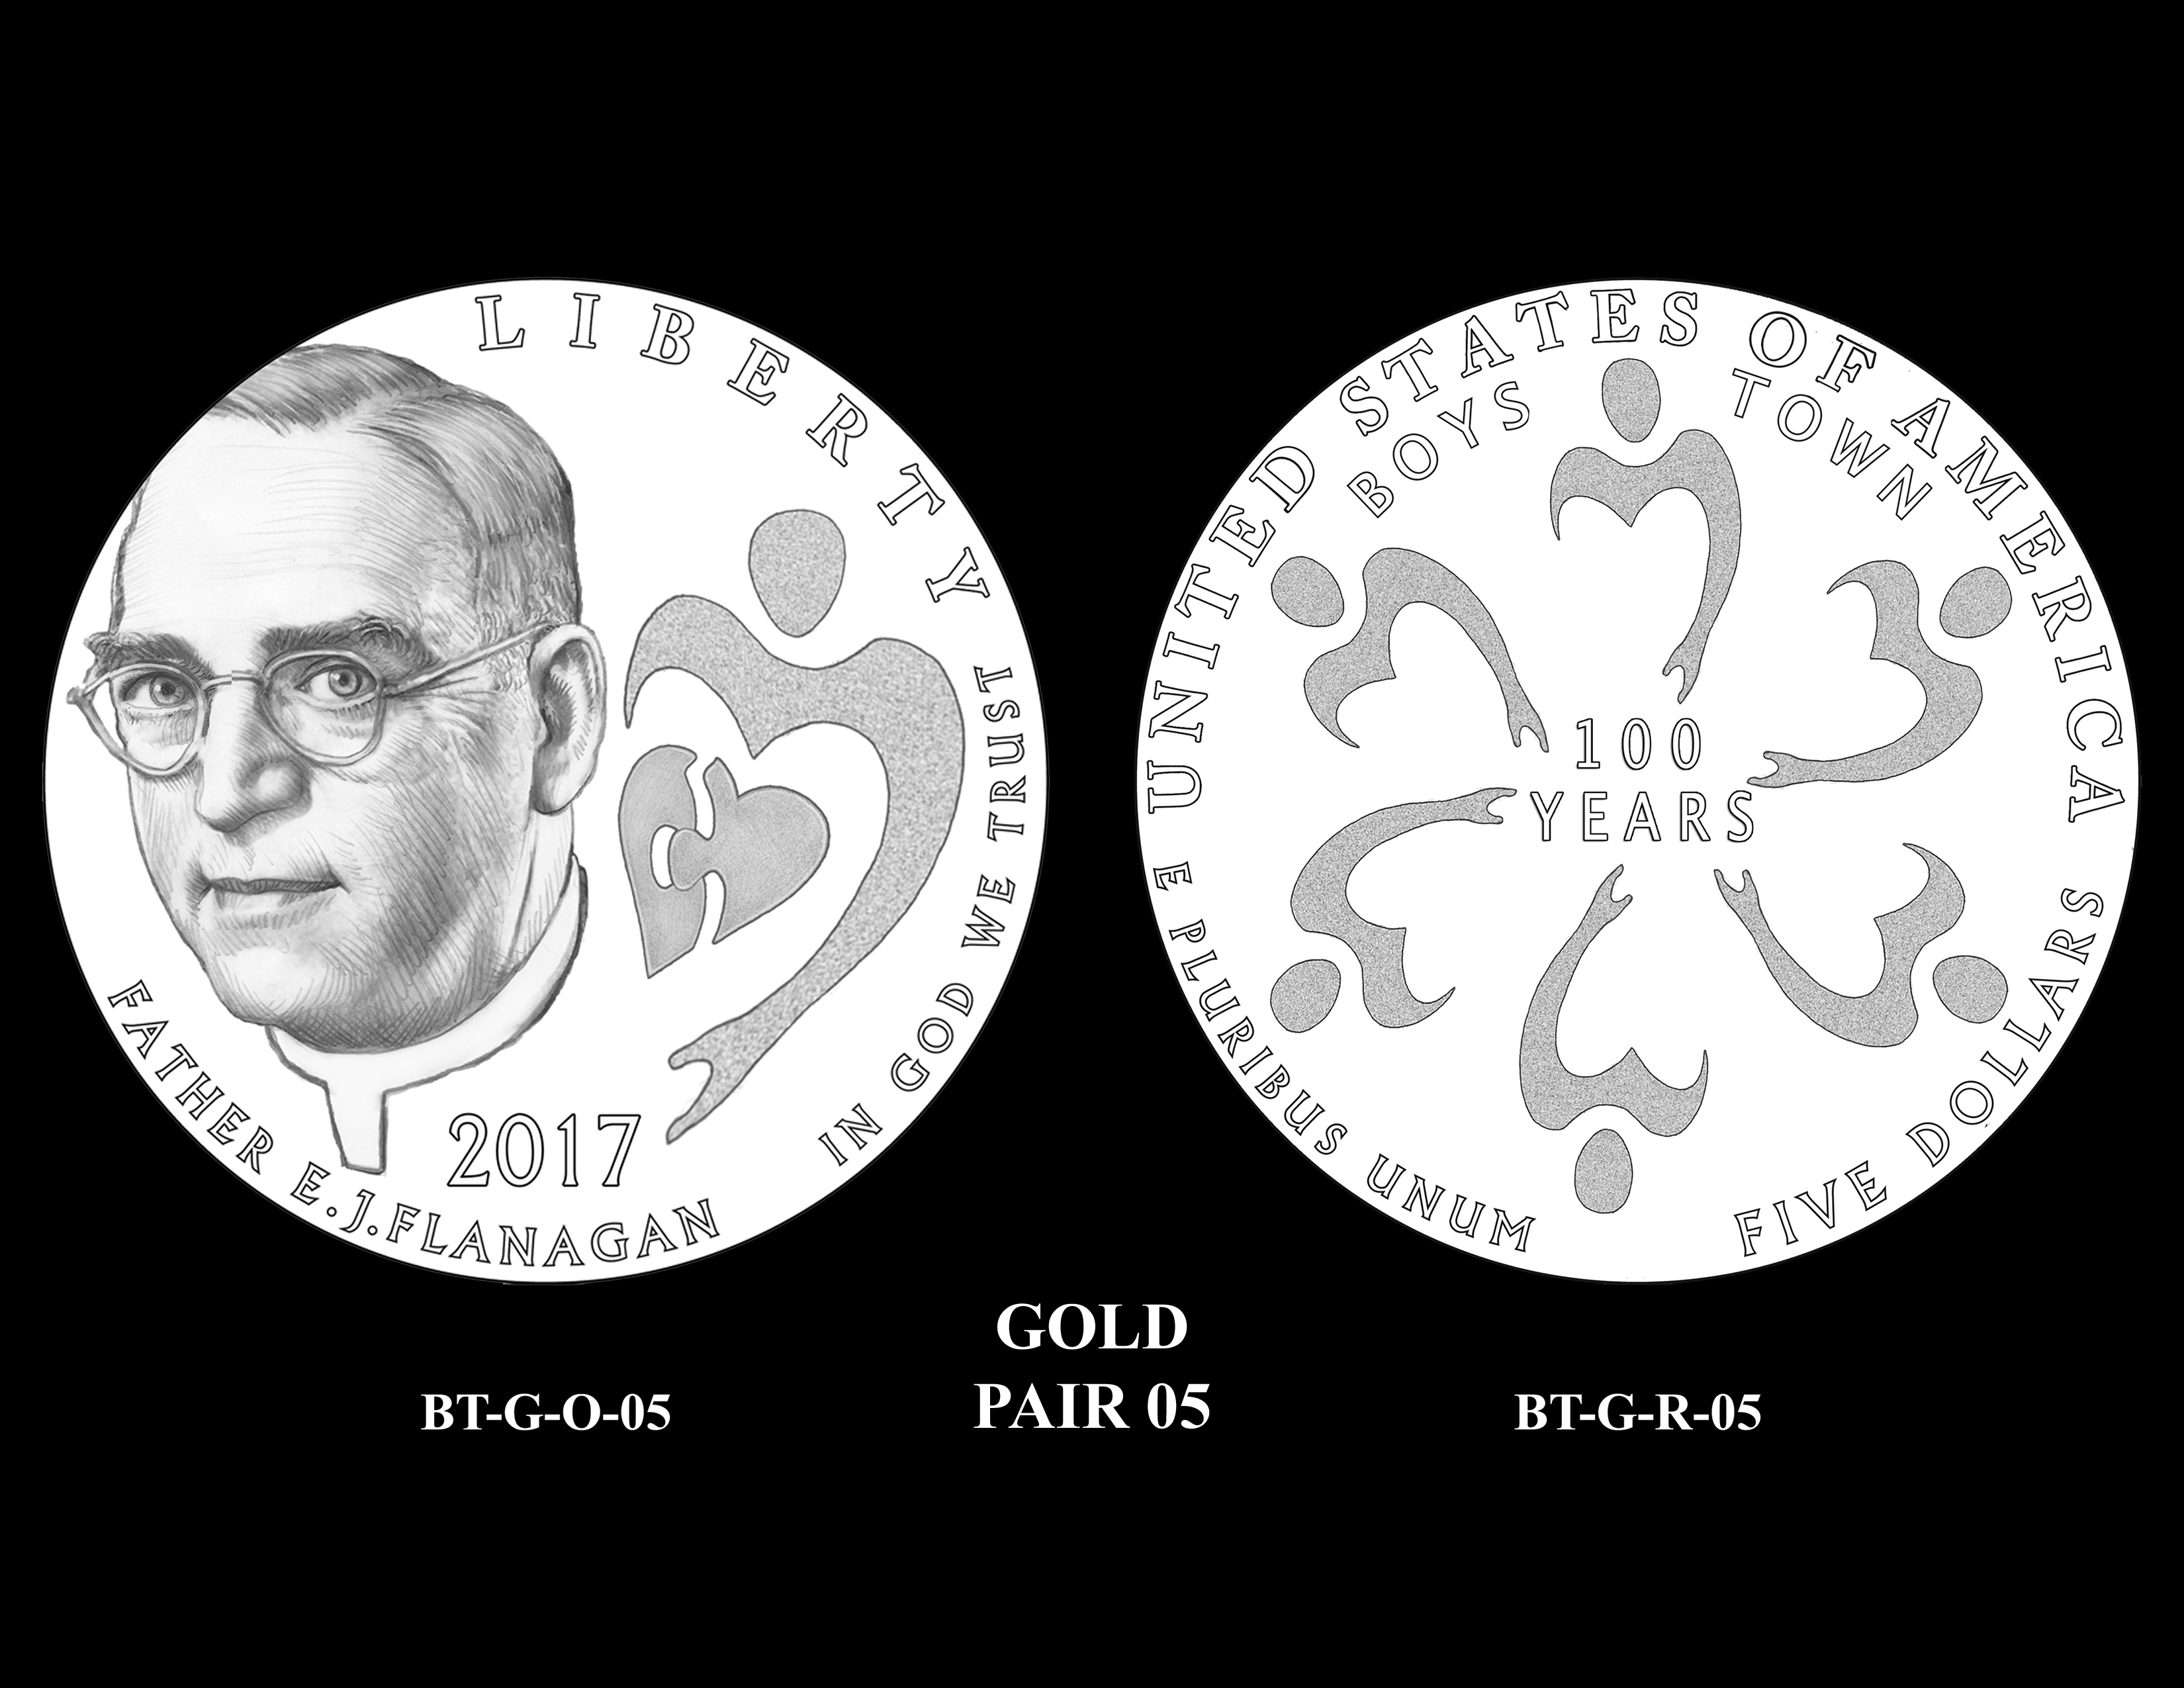 Gold-Pair-05 -- 2017 Boystown Centennial Commemorative Coin  Program